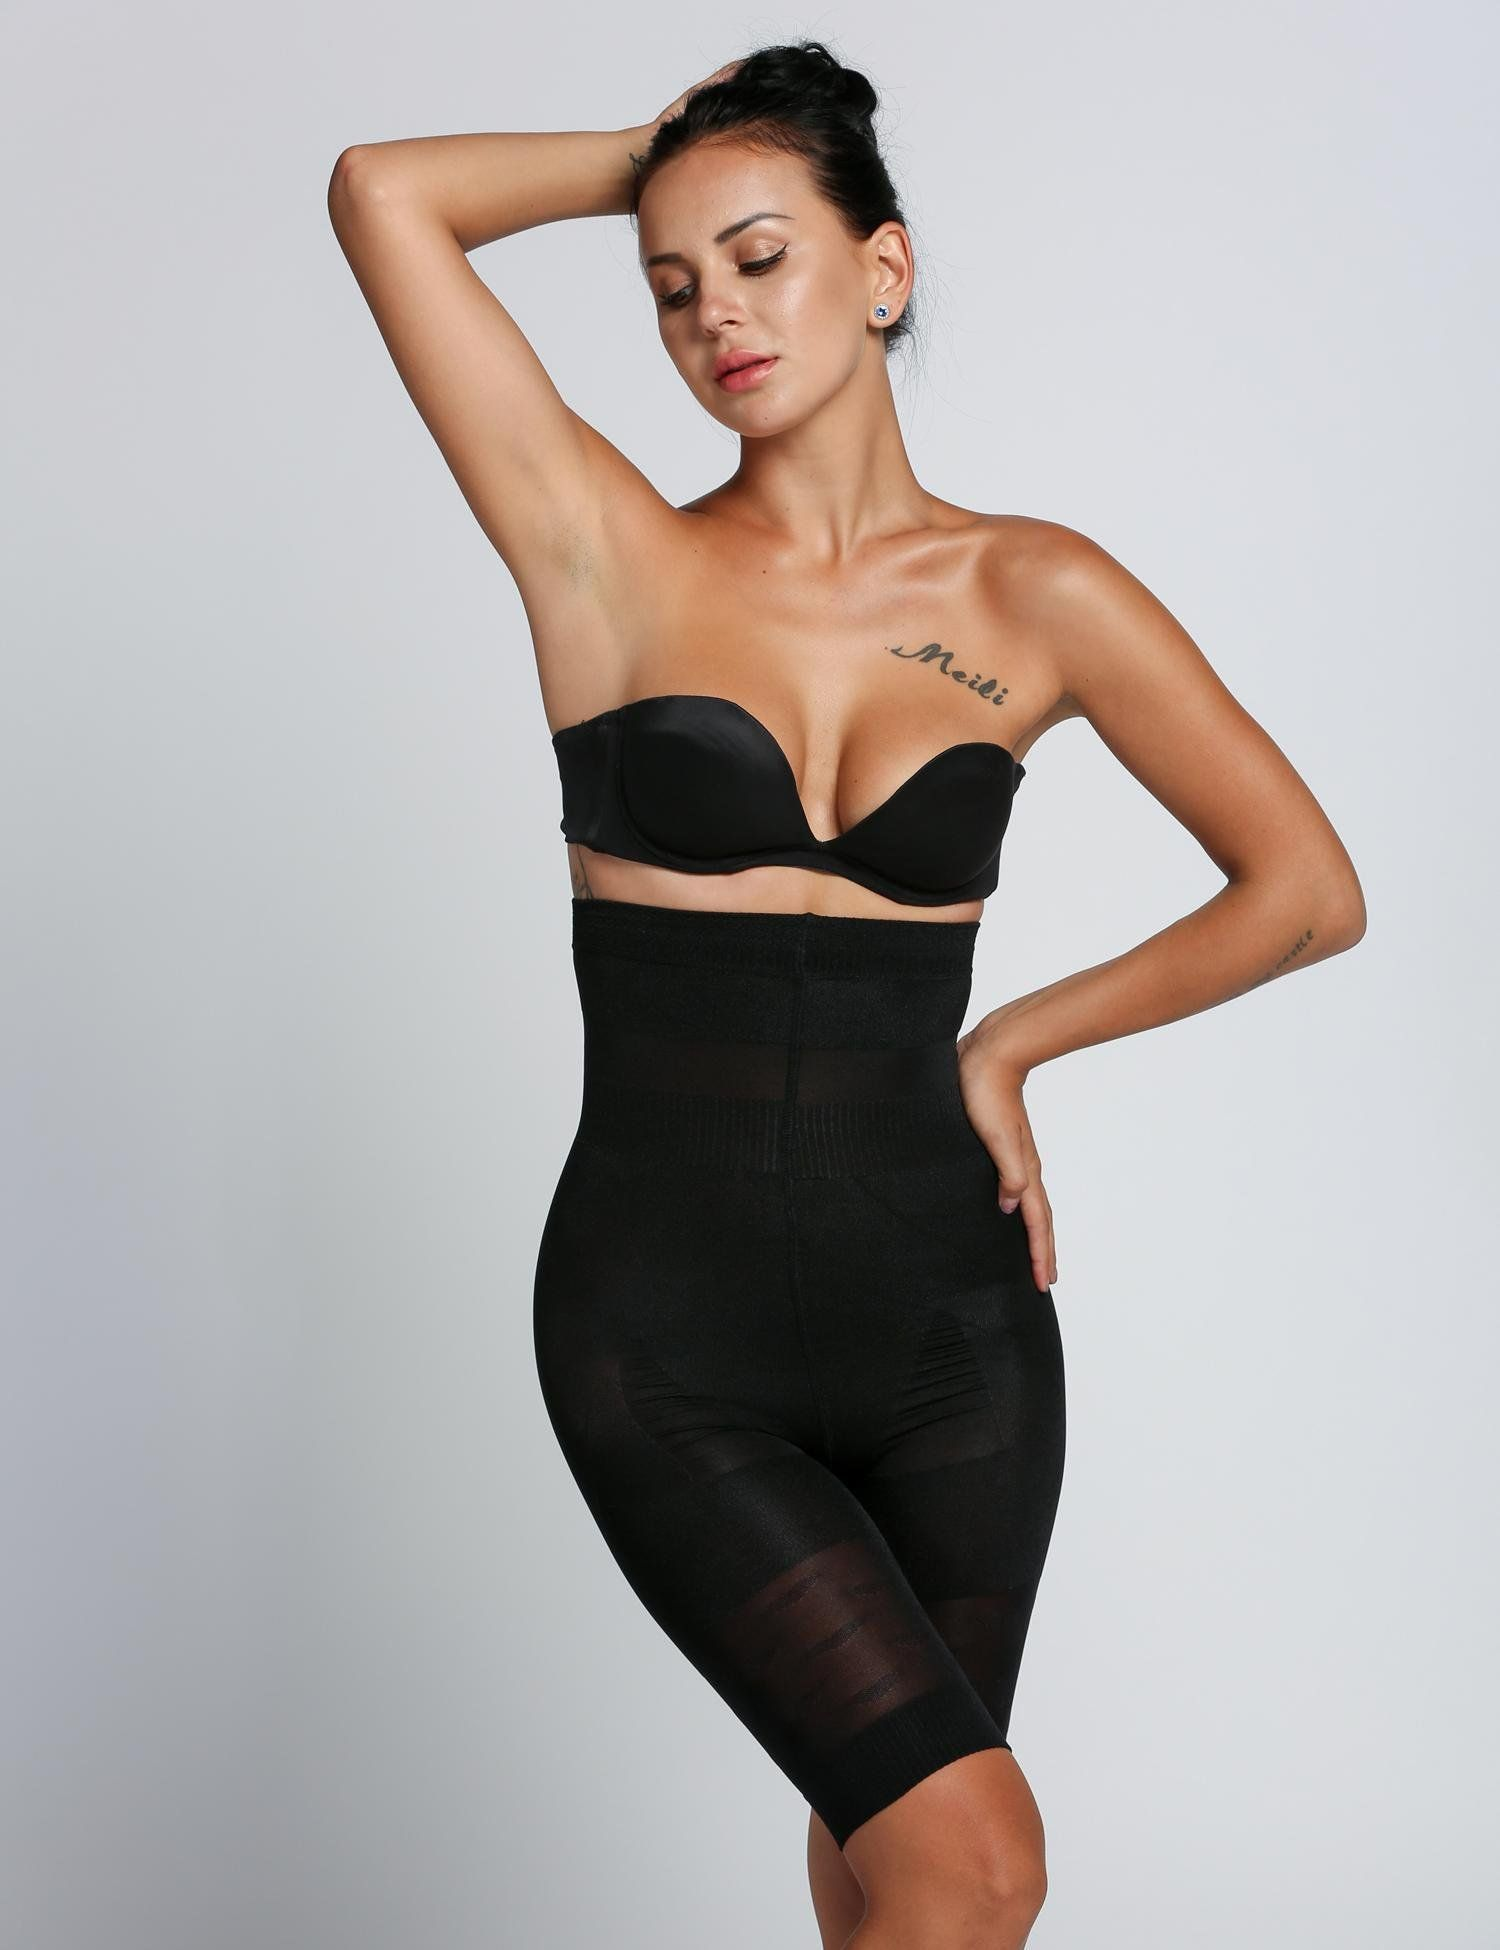 52bec21d18a9e Meflying Women Sexy High Cuts Beauty Slimming Shapewear Fat Burning Slim  Shape Bodysuit and Pants   Find out more about the great product at the  image link.